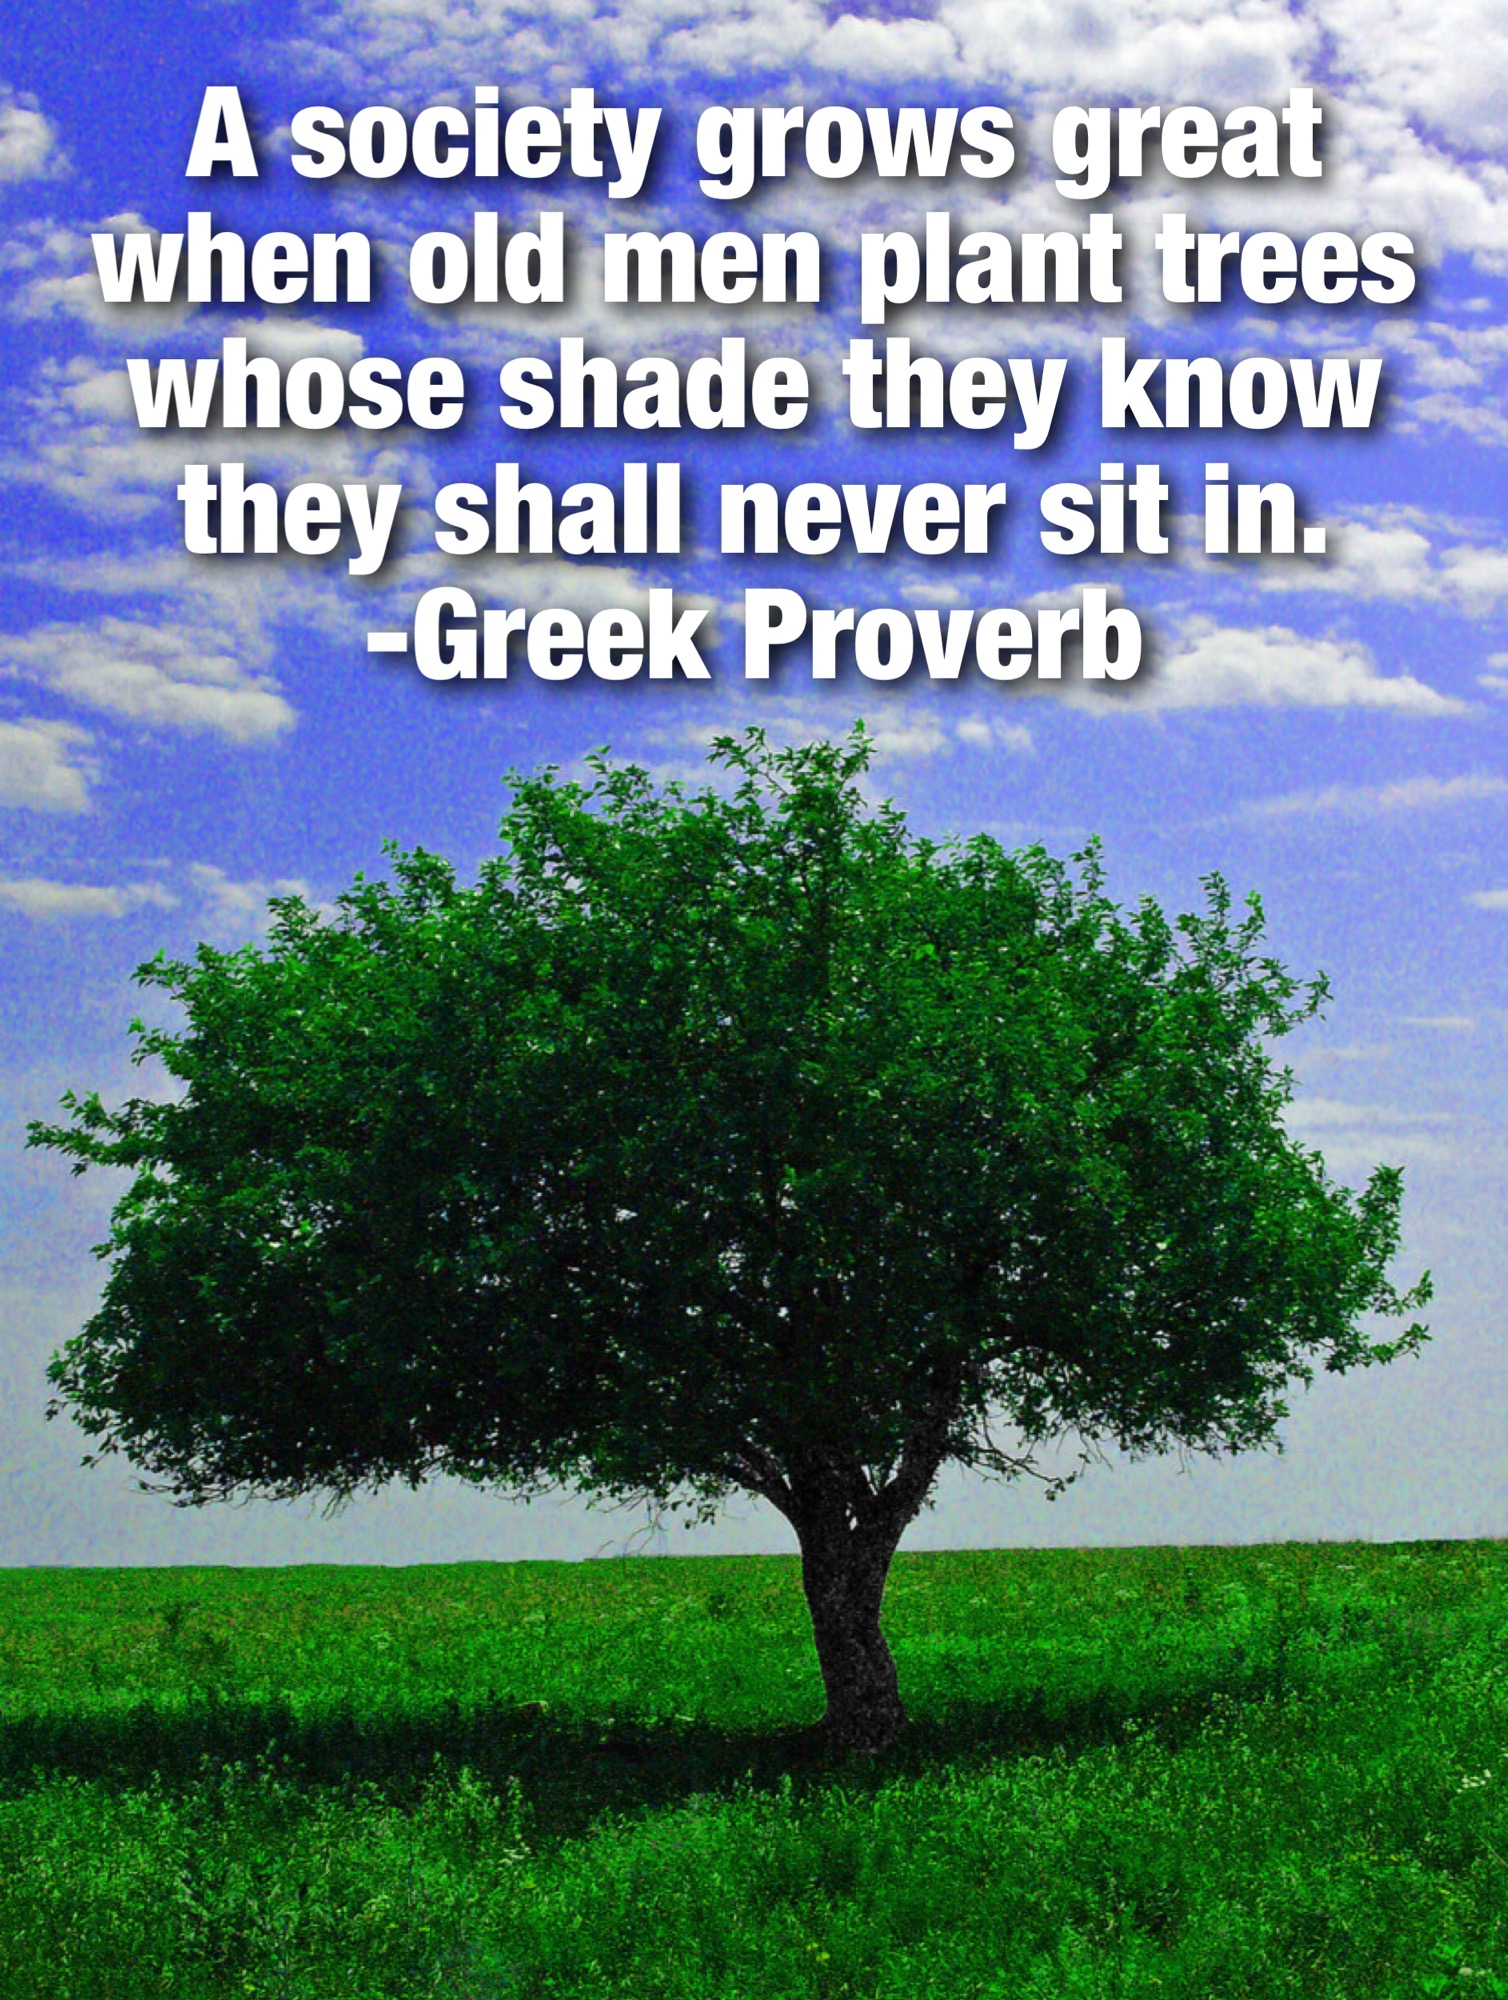 shade tree proverb.JPG